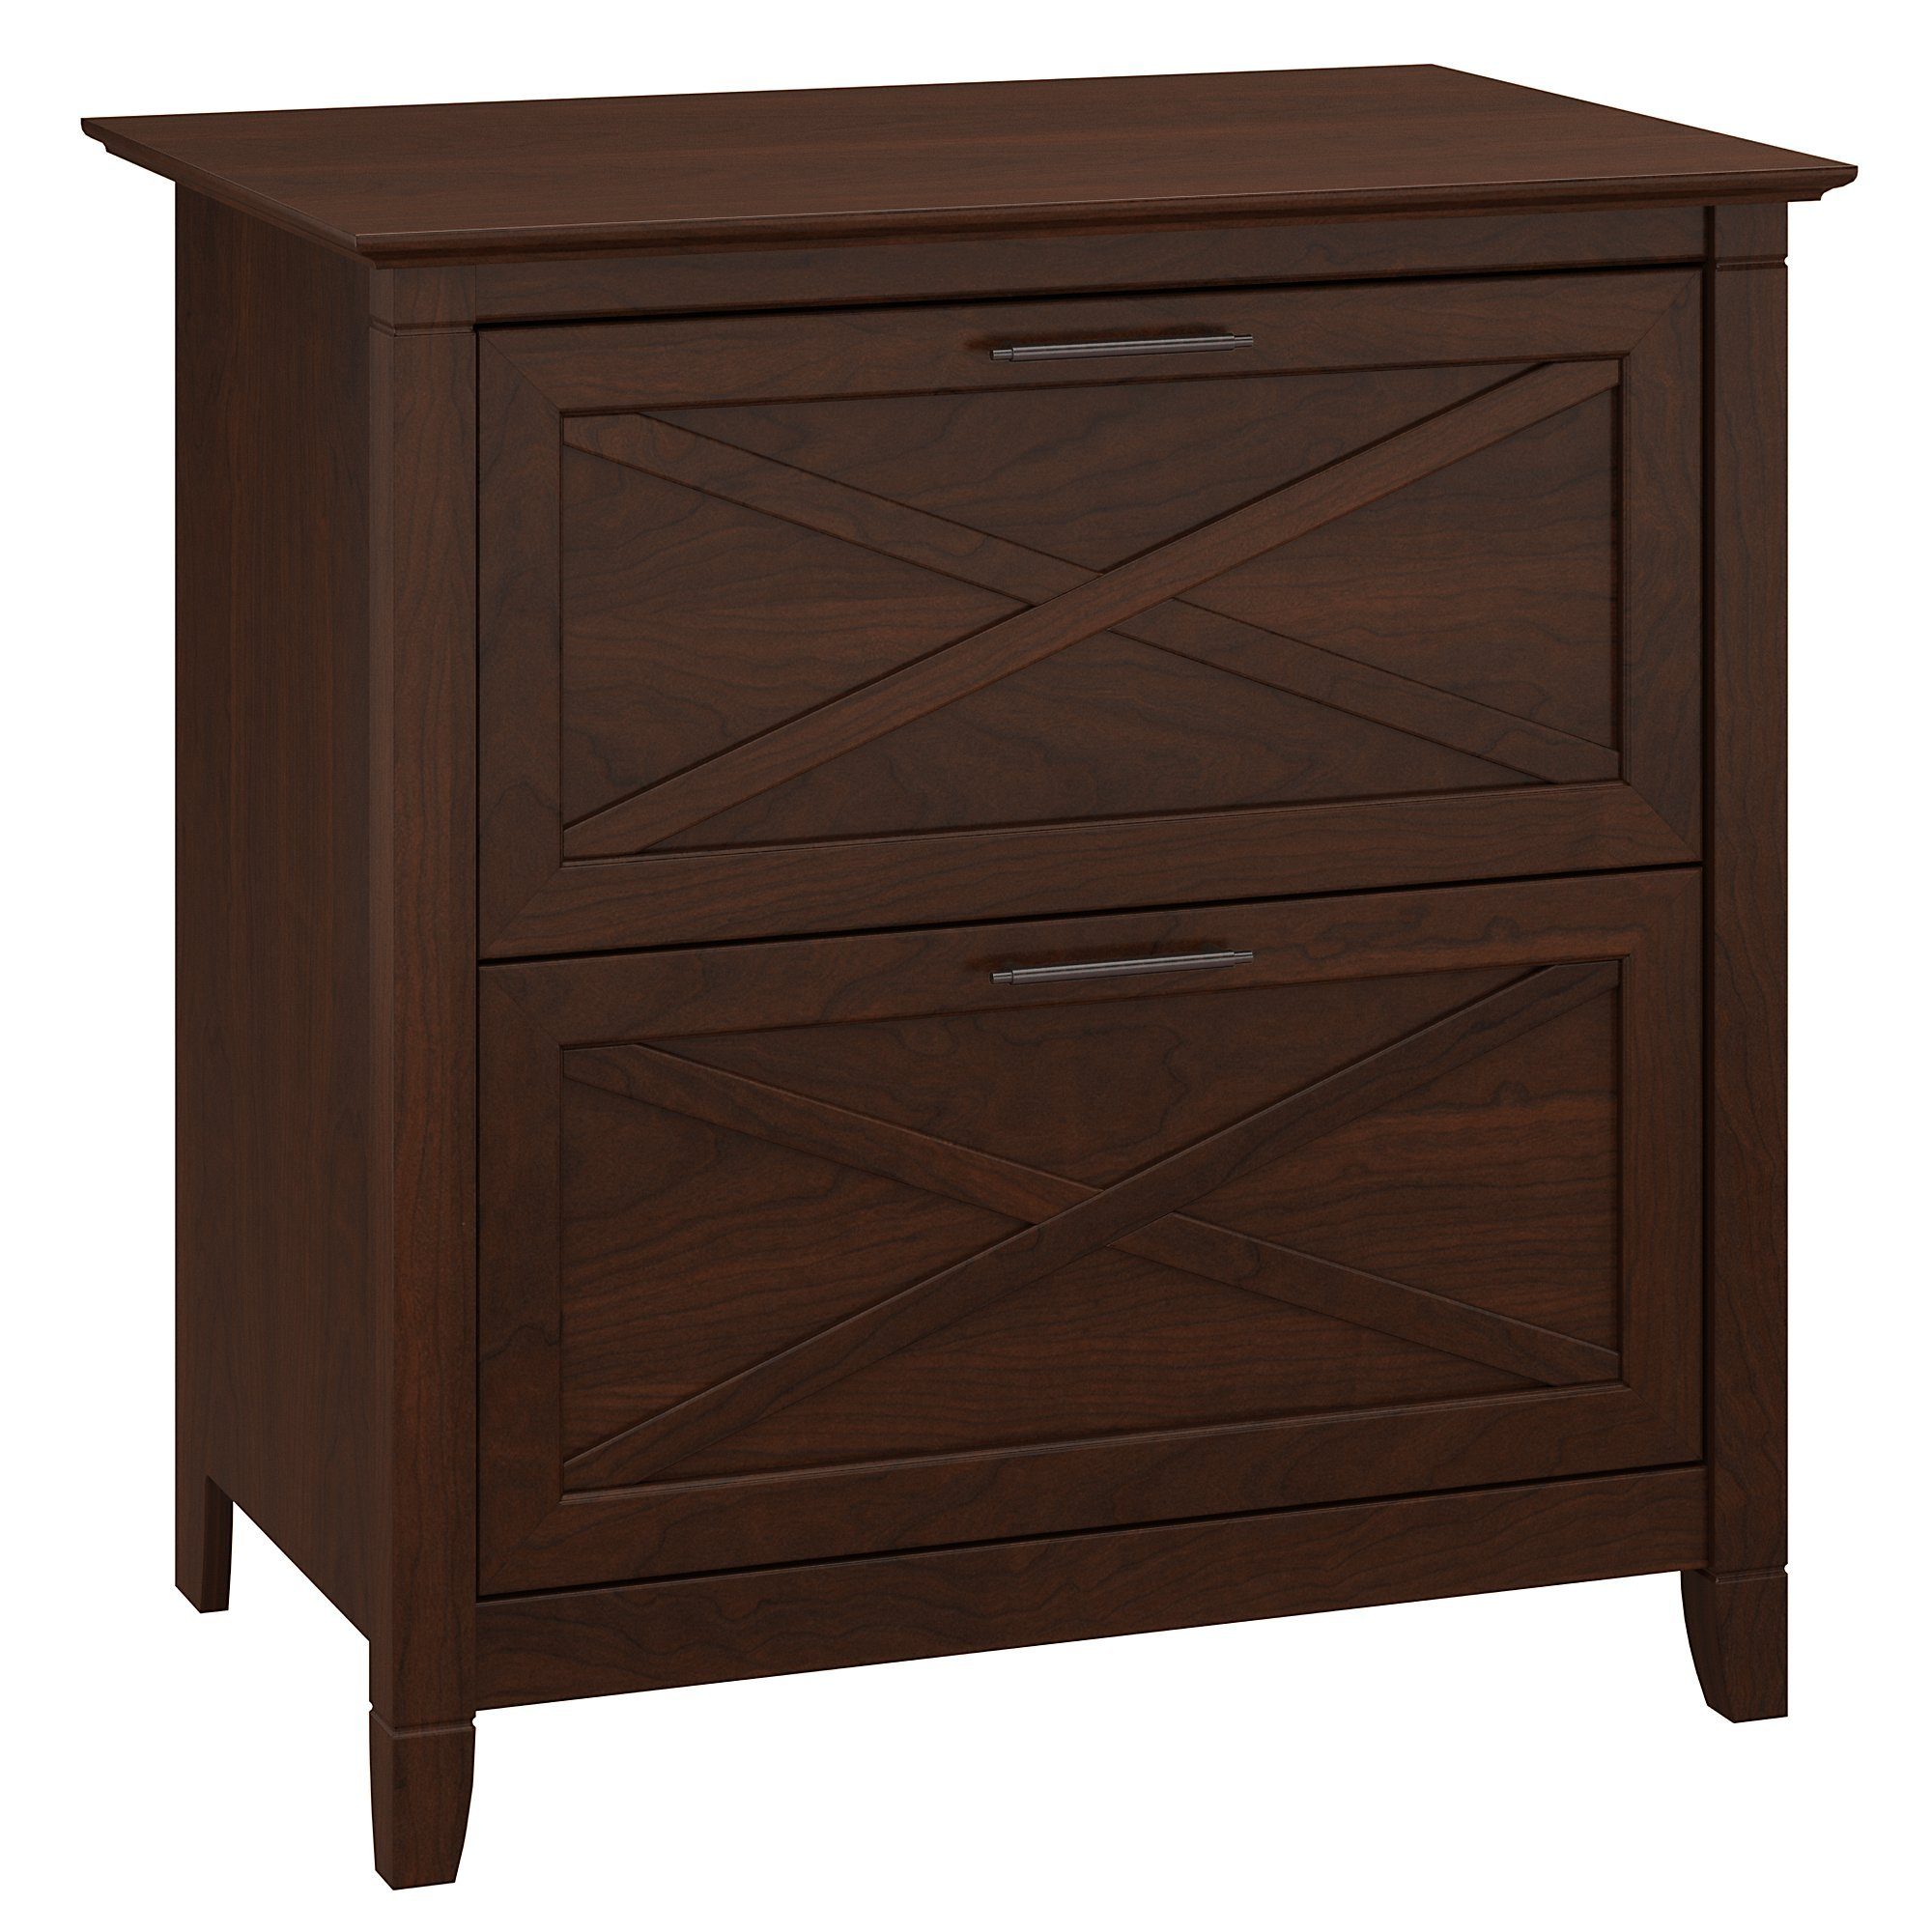 Bush Furniture Key West 2 Drawer Lateral File Cabinet in Bing Cherry by Bush Furniture